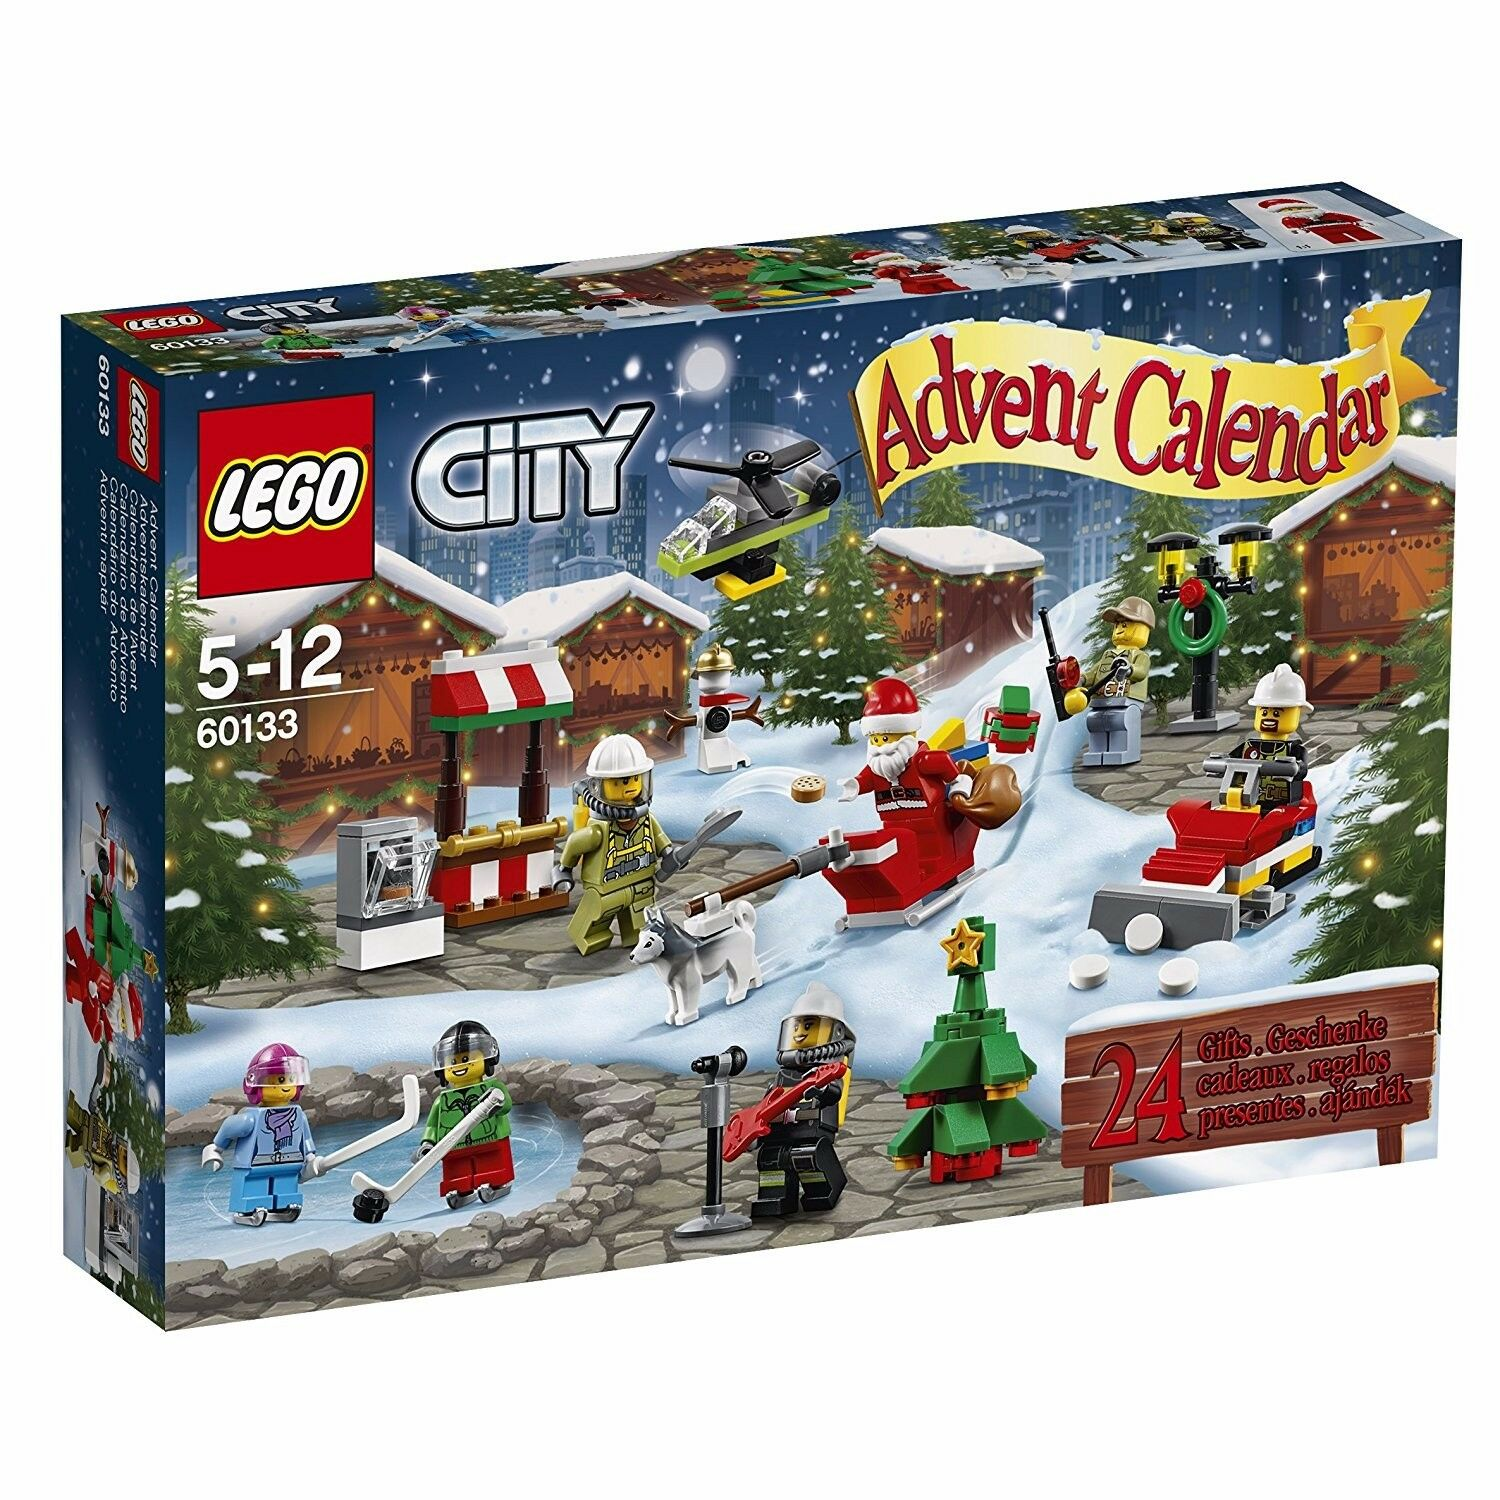 lego city adventskalender feuerwehr 2016 advent calendar. Black Bedroom Furniture Sets. Home Design Ideas